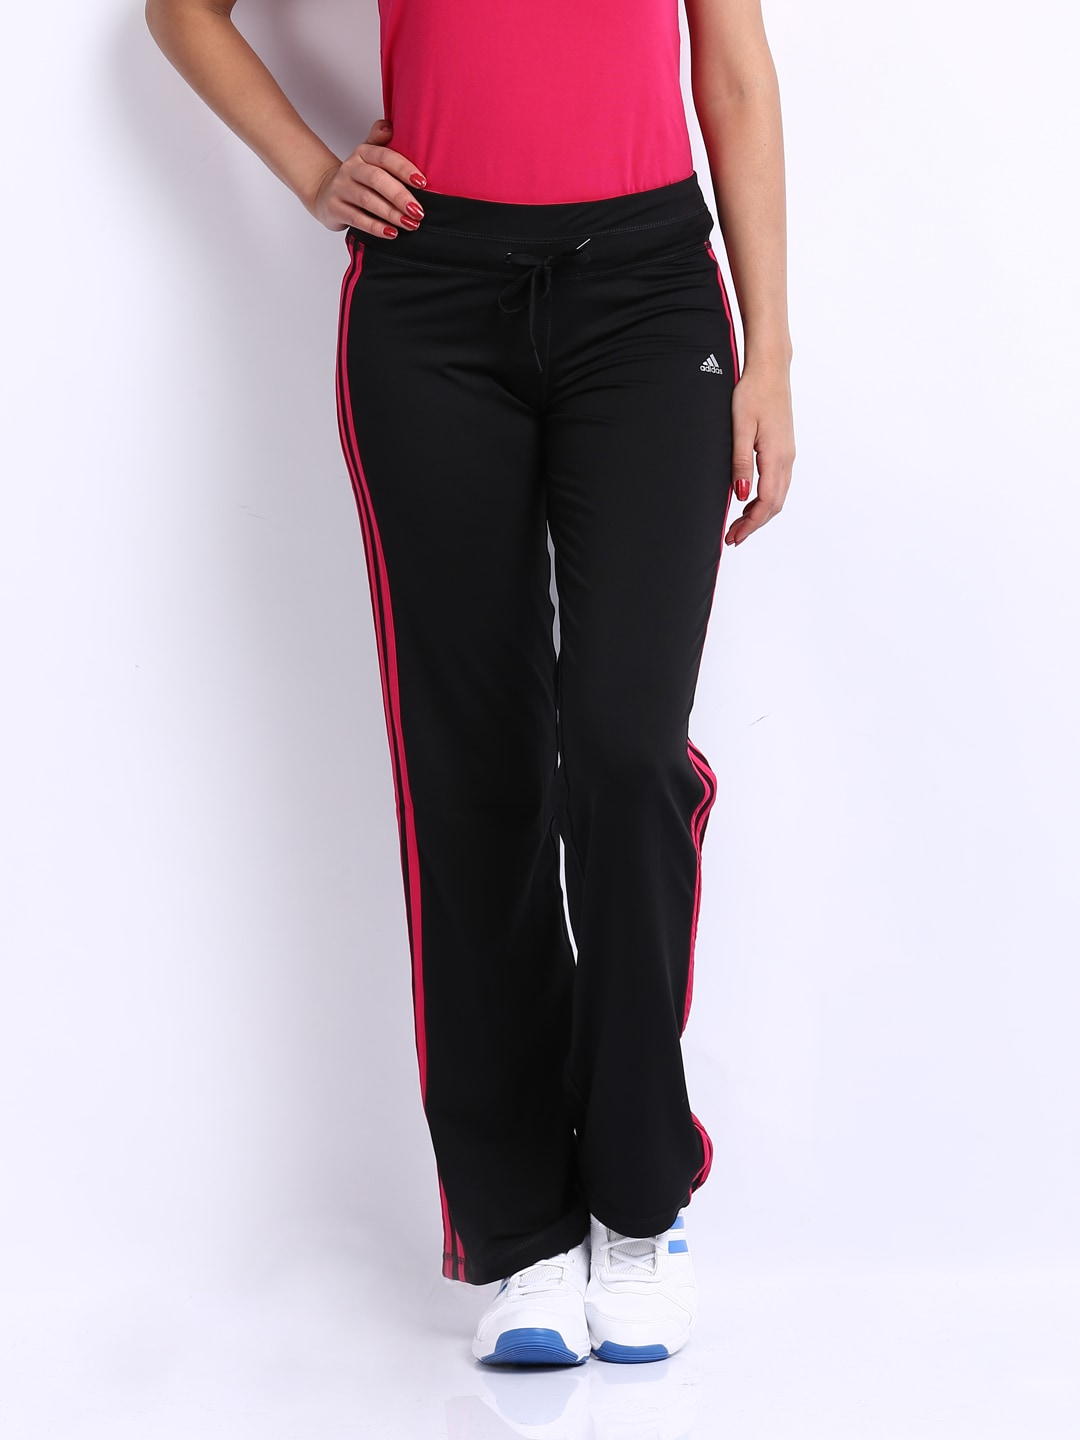 New  More Track Pants By Dazzgear More Black Track Pants More Track Pants